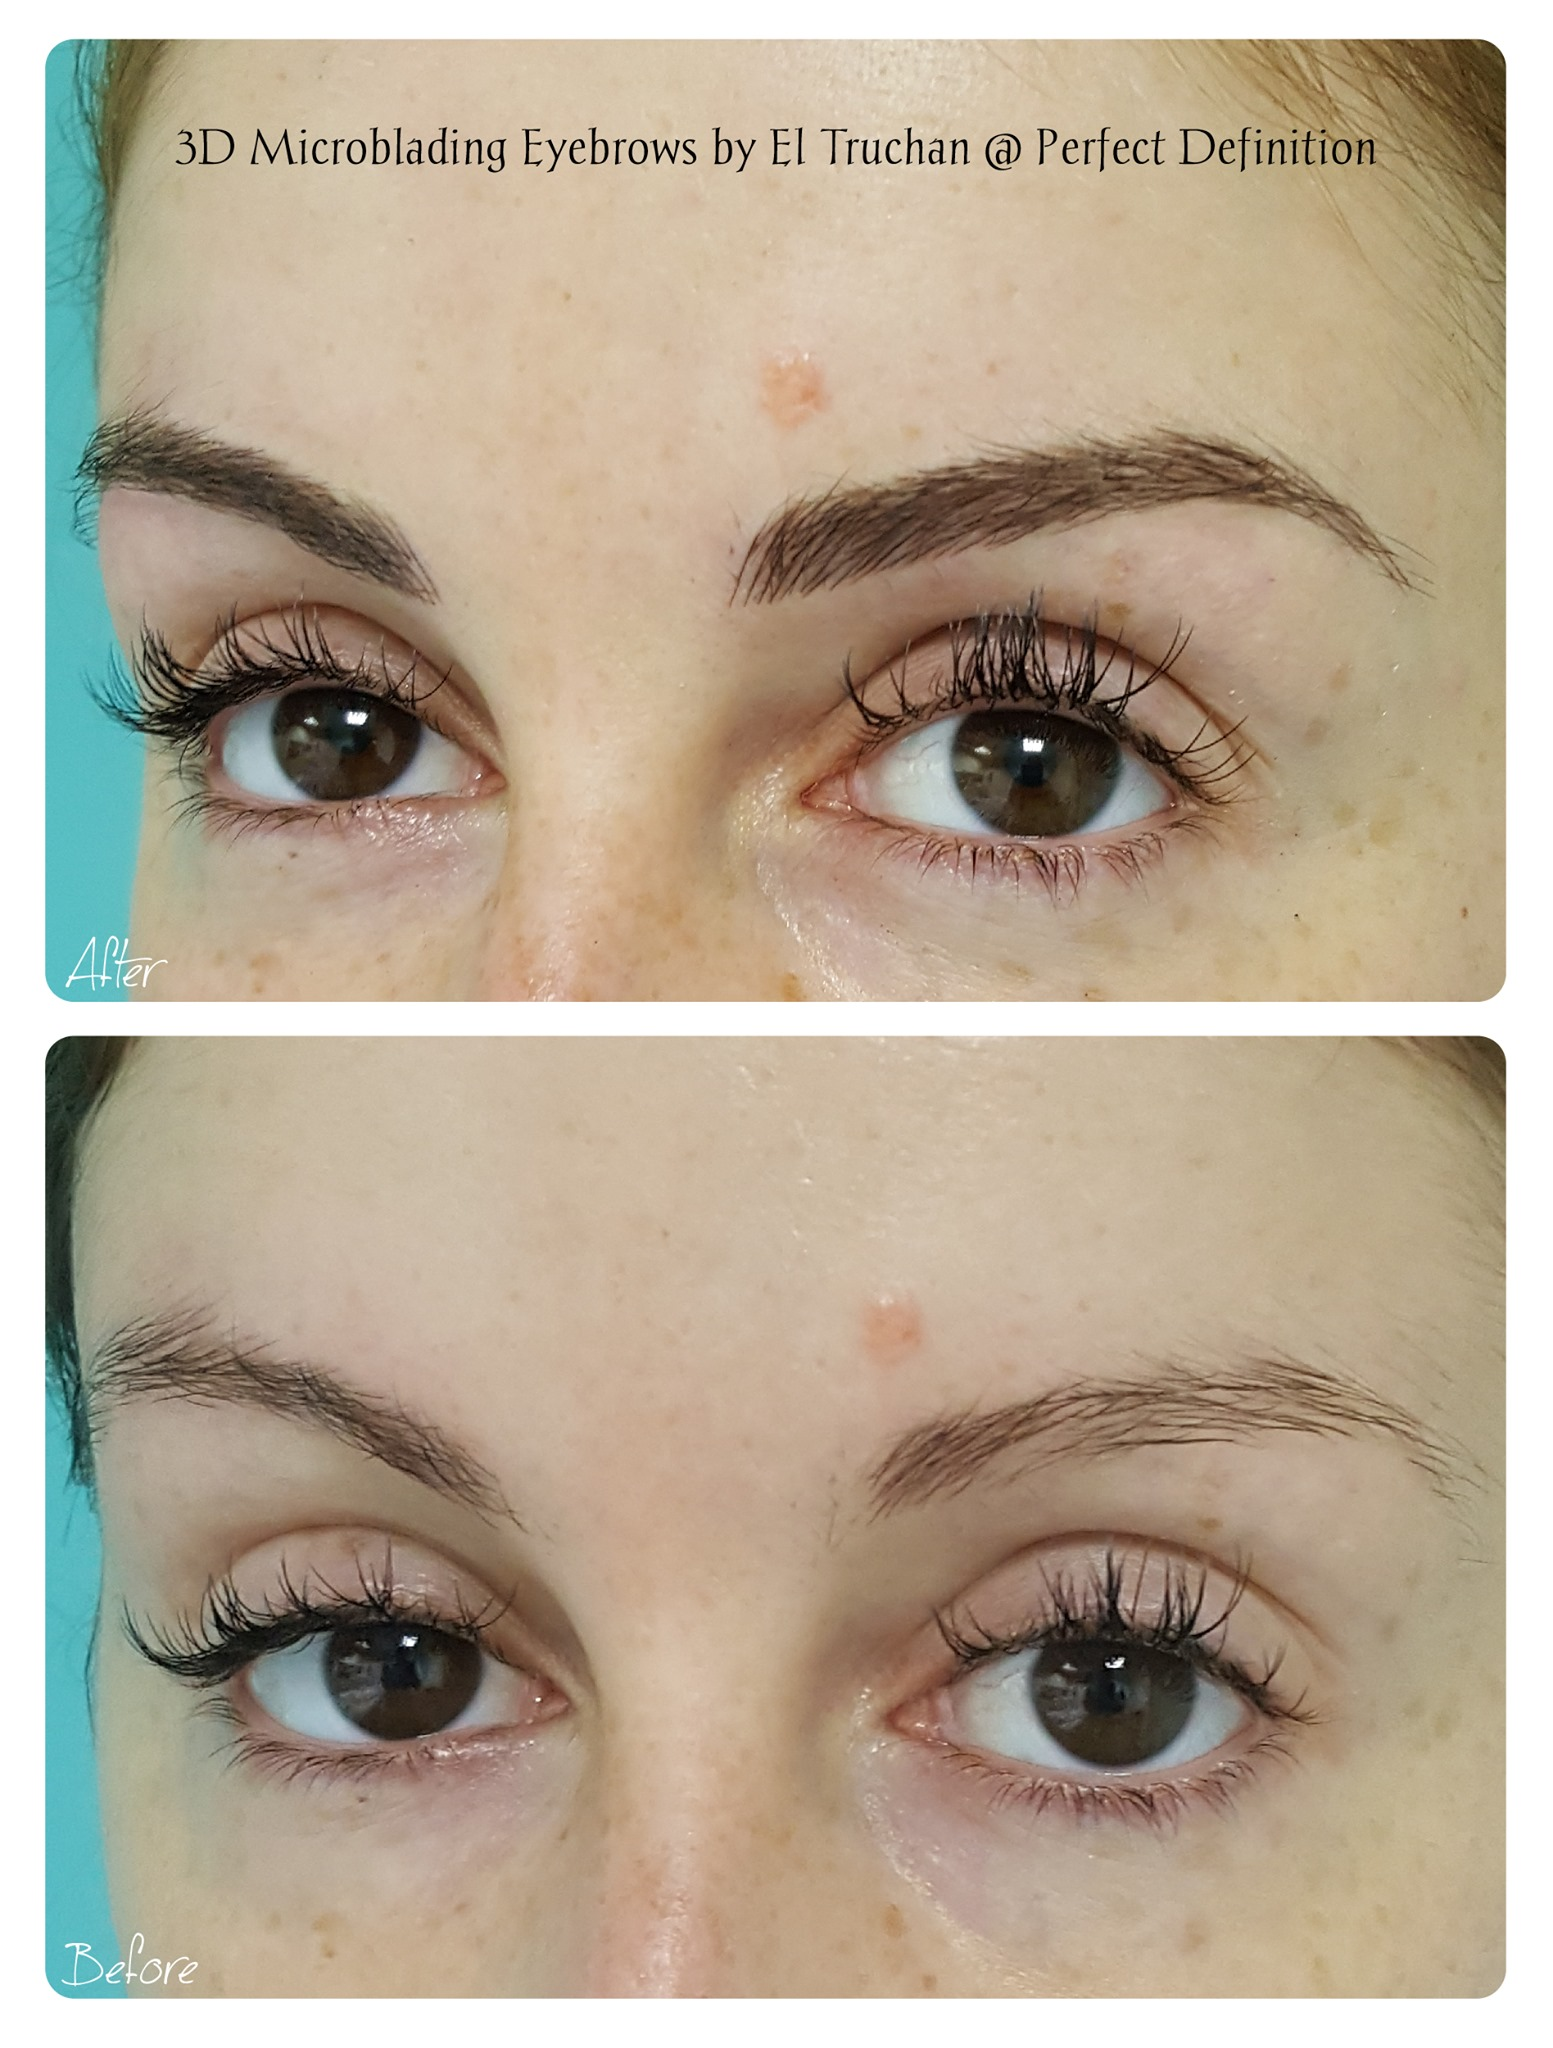 3D Microblading Eyebrows by El Truchan @